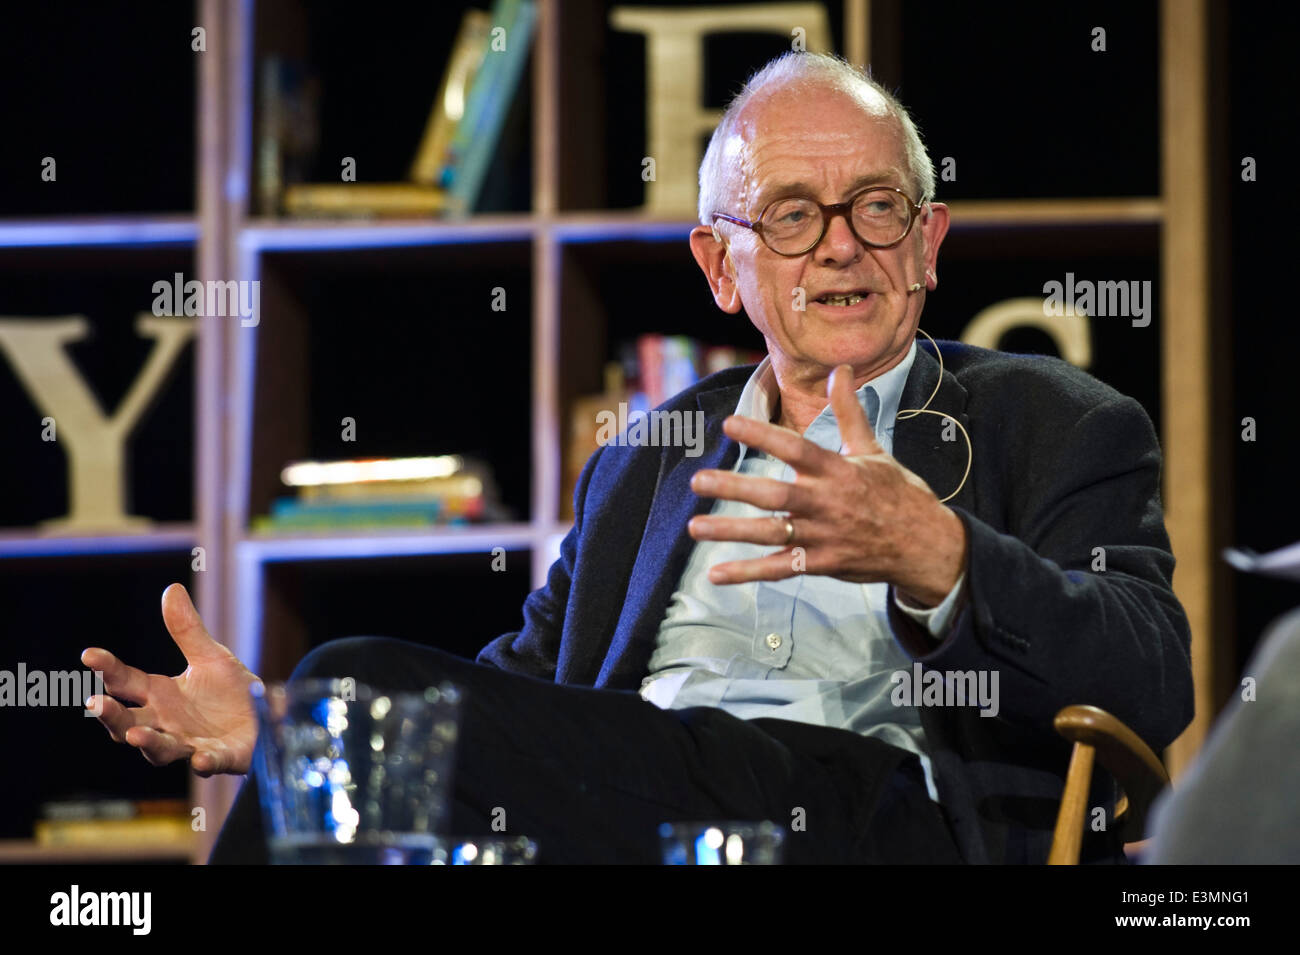 Henry Marsh neurosurgeon talking to Ian McEwan at Hay Festival 2014. Stock Photo